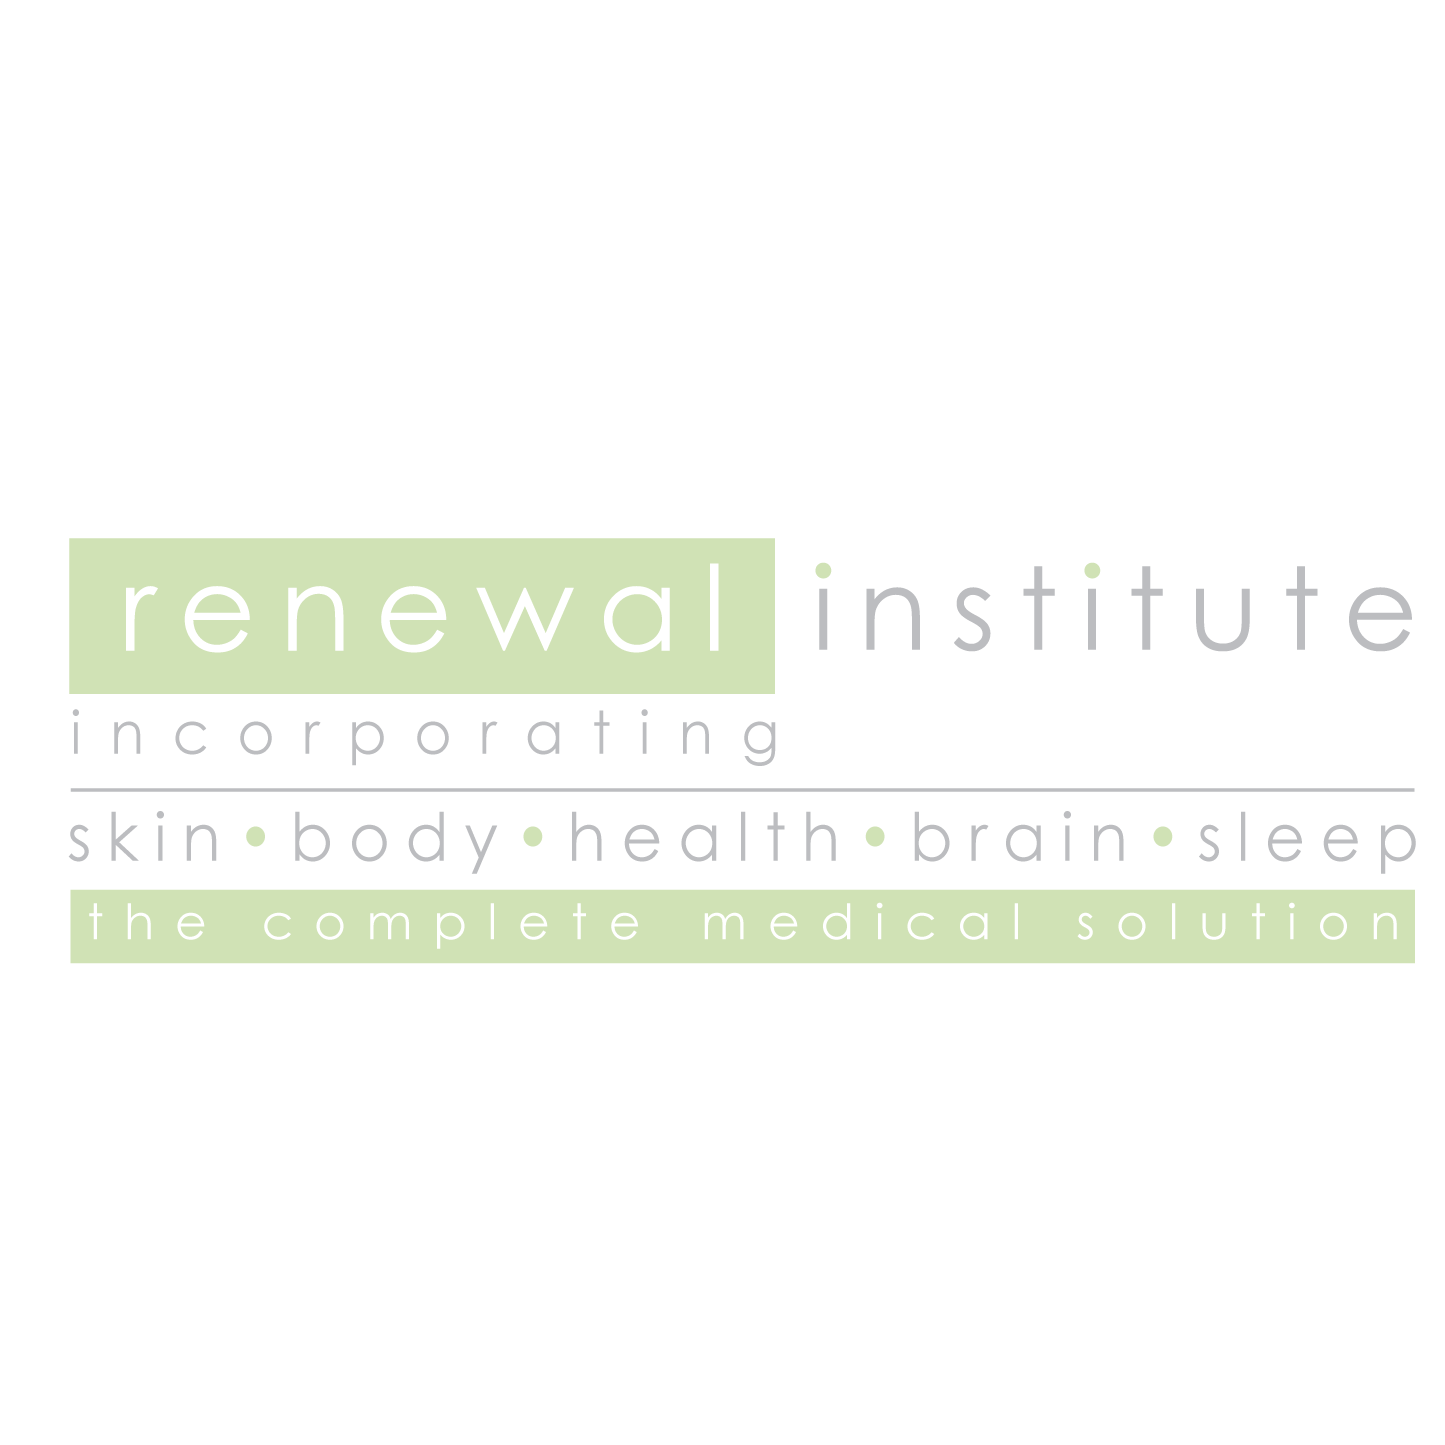 Skin Renewal Morningside Sandton